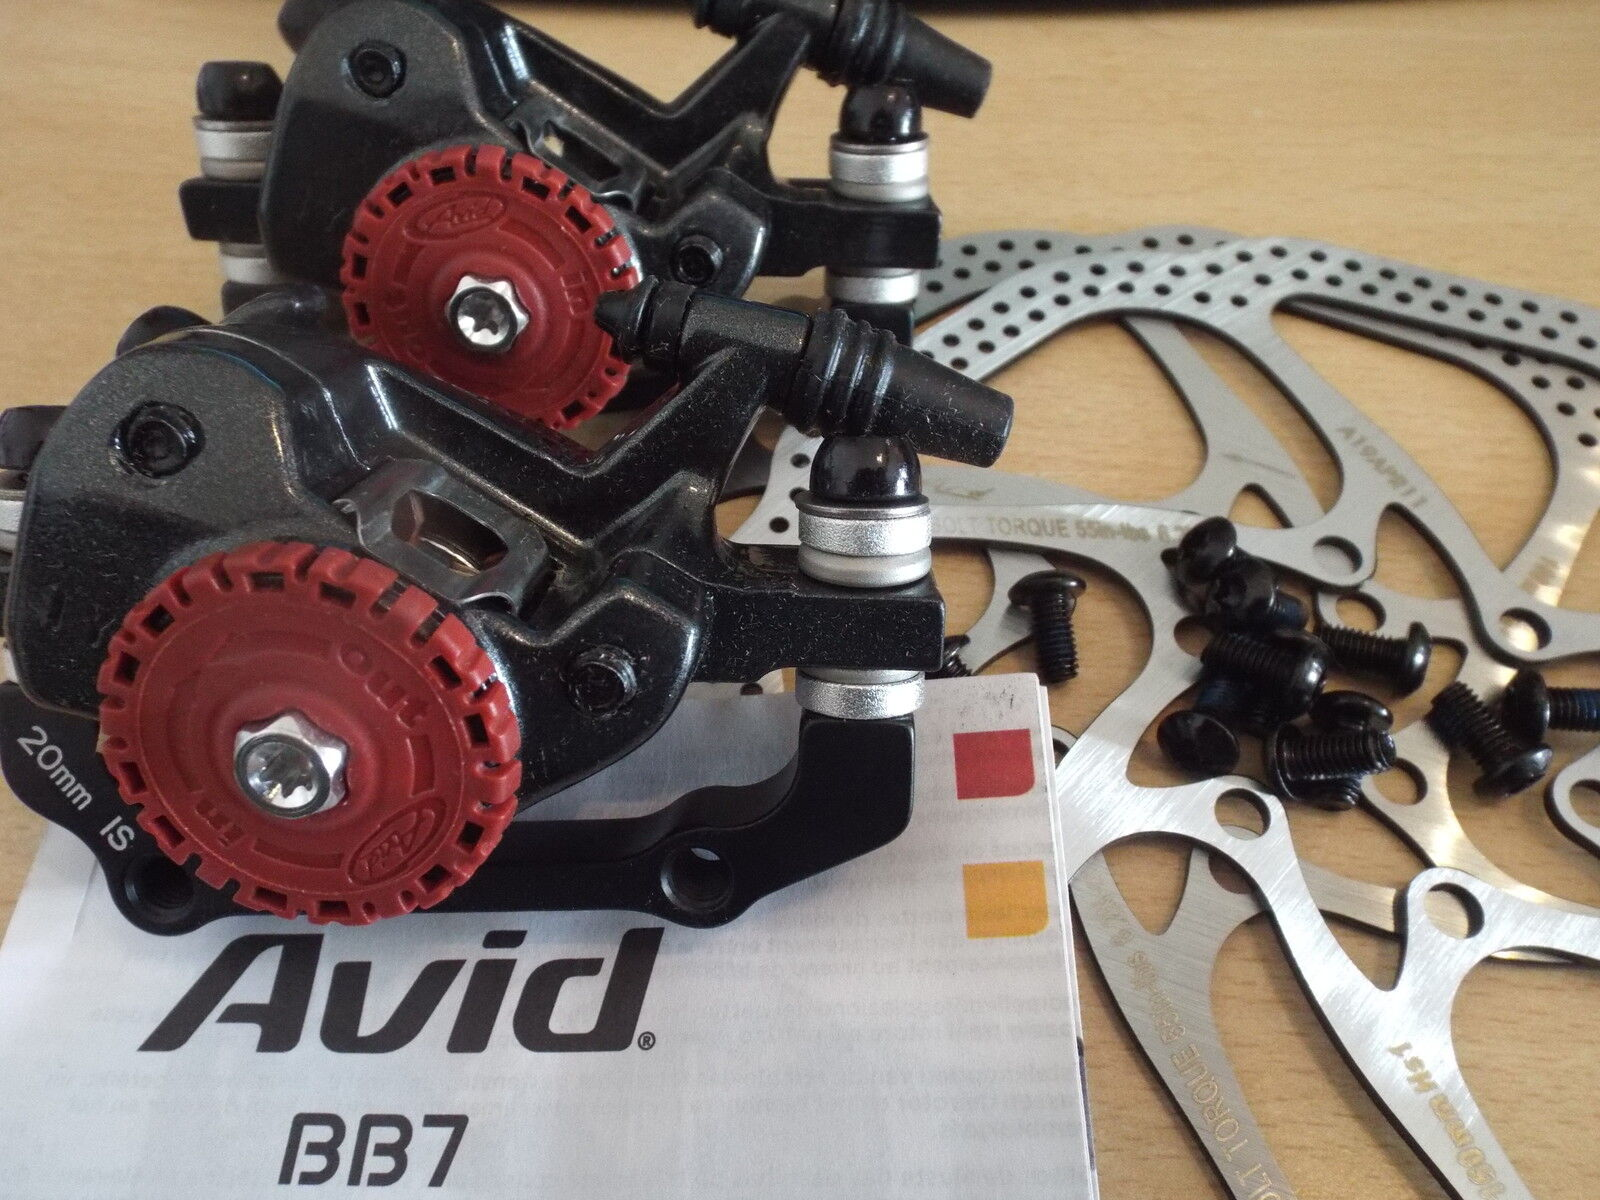 Avid BB7 Mechanical Disc Brake Front and Rear Calipers with 160mm G3 Rotors